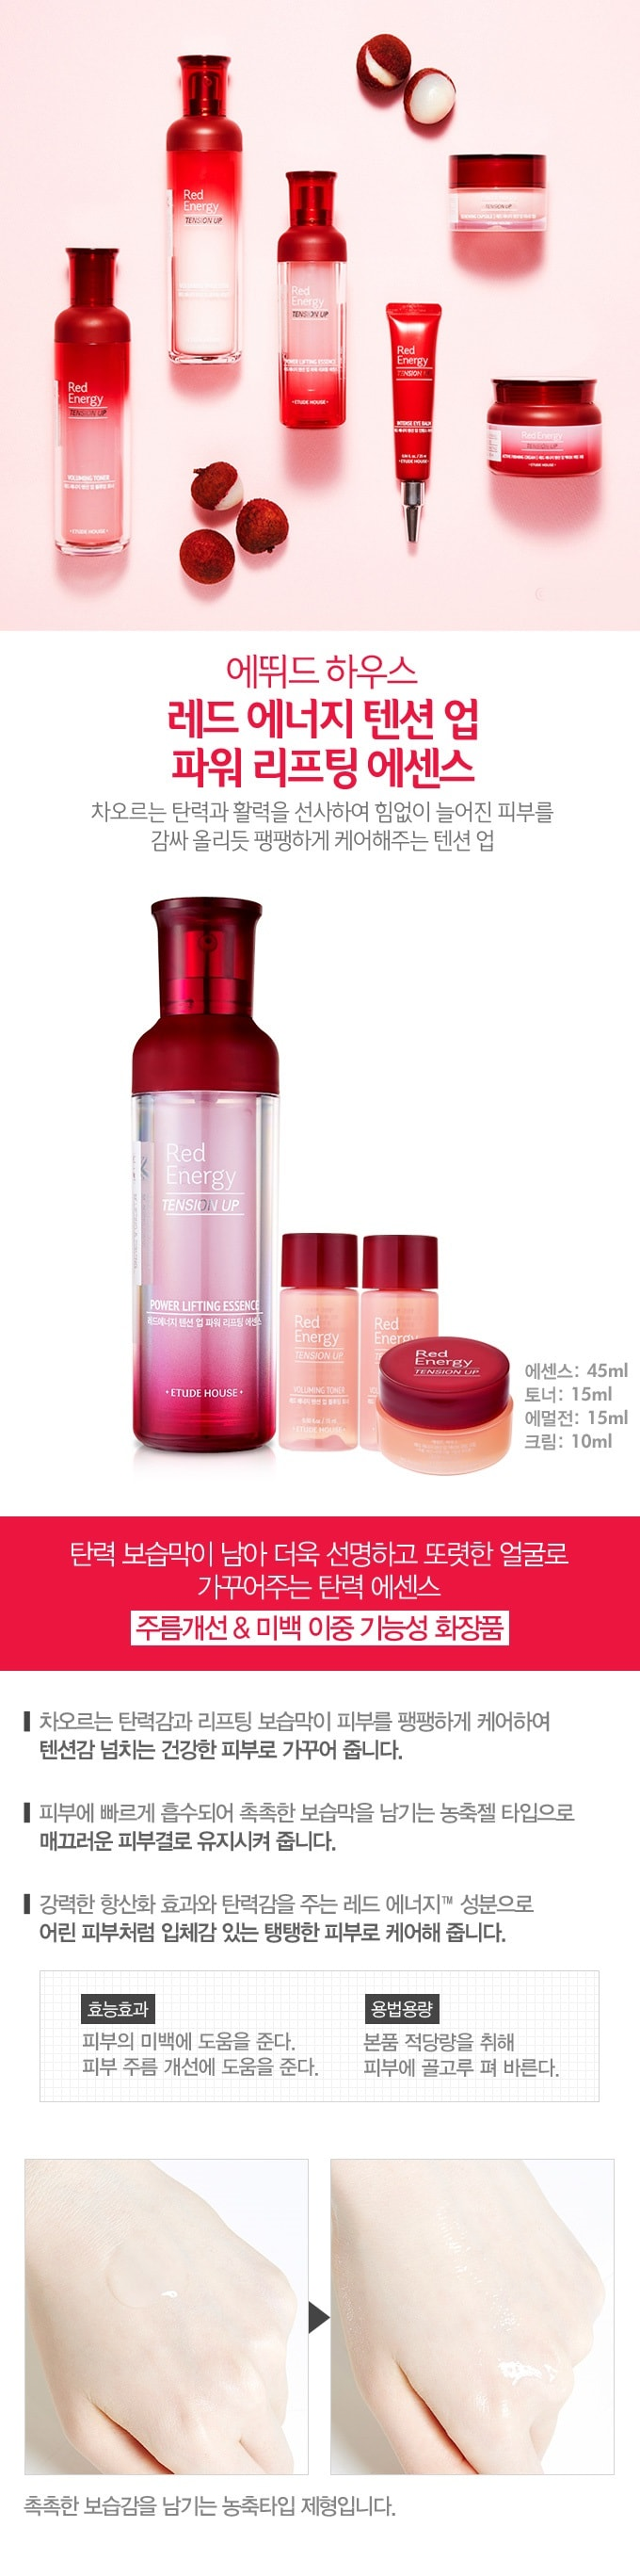 ETUDE HOUSE Red Energy Tension Up Power Lifting Essence 45ml